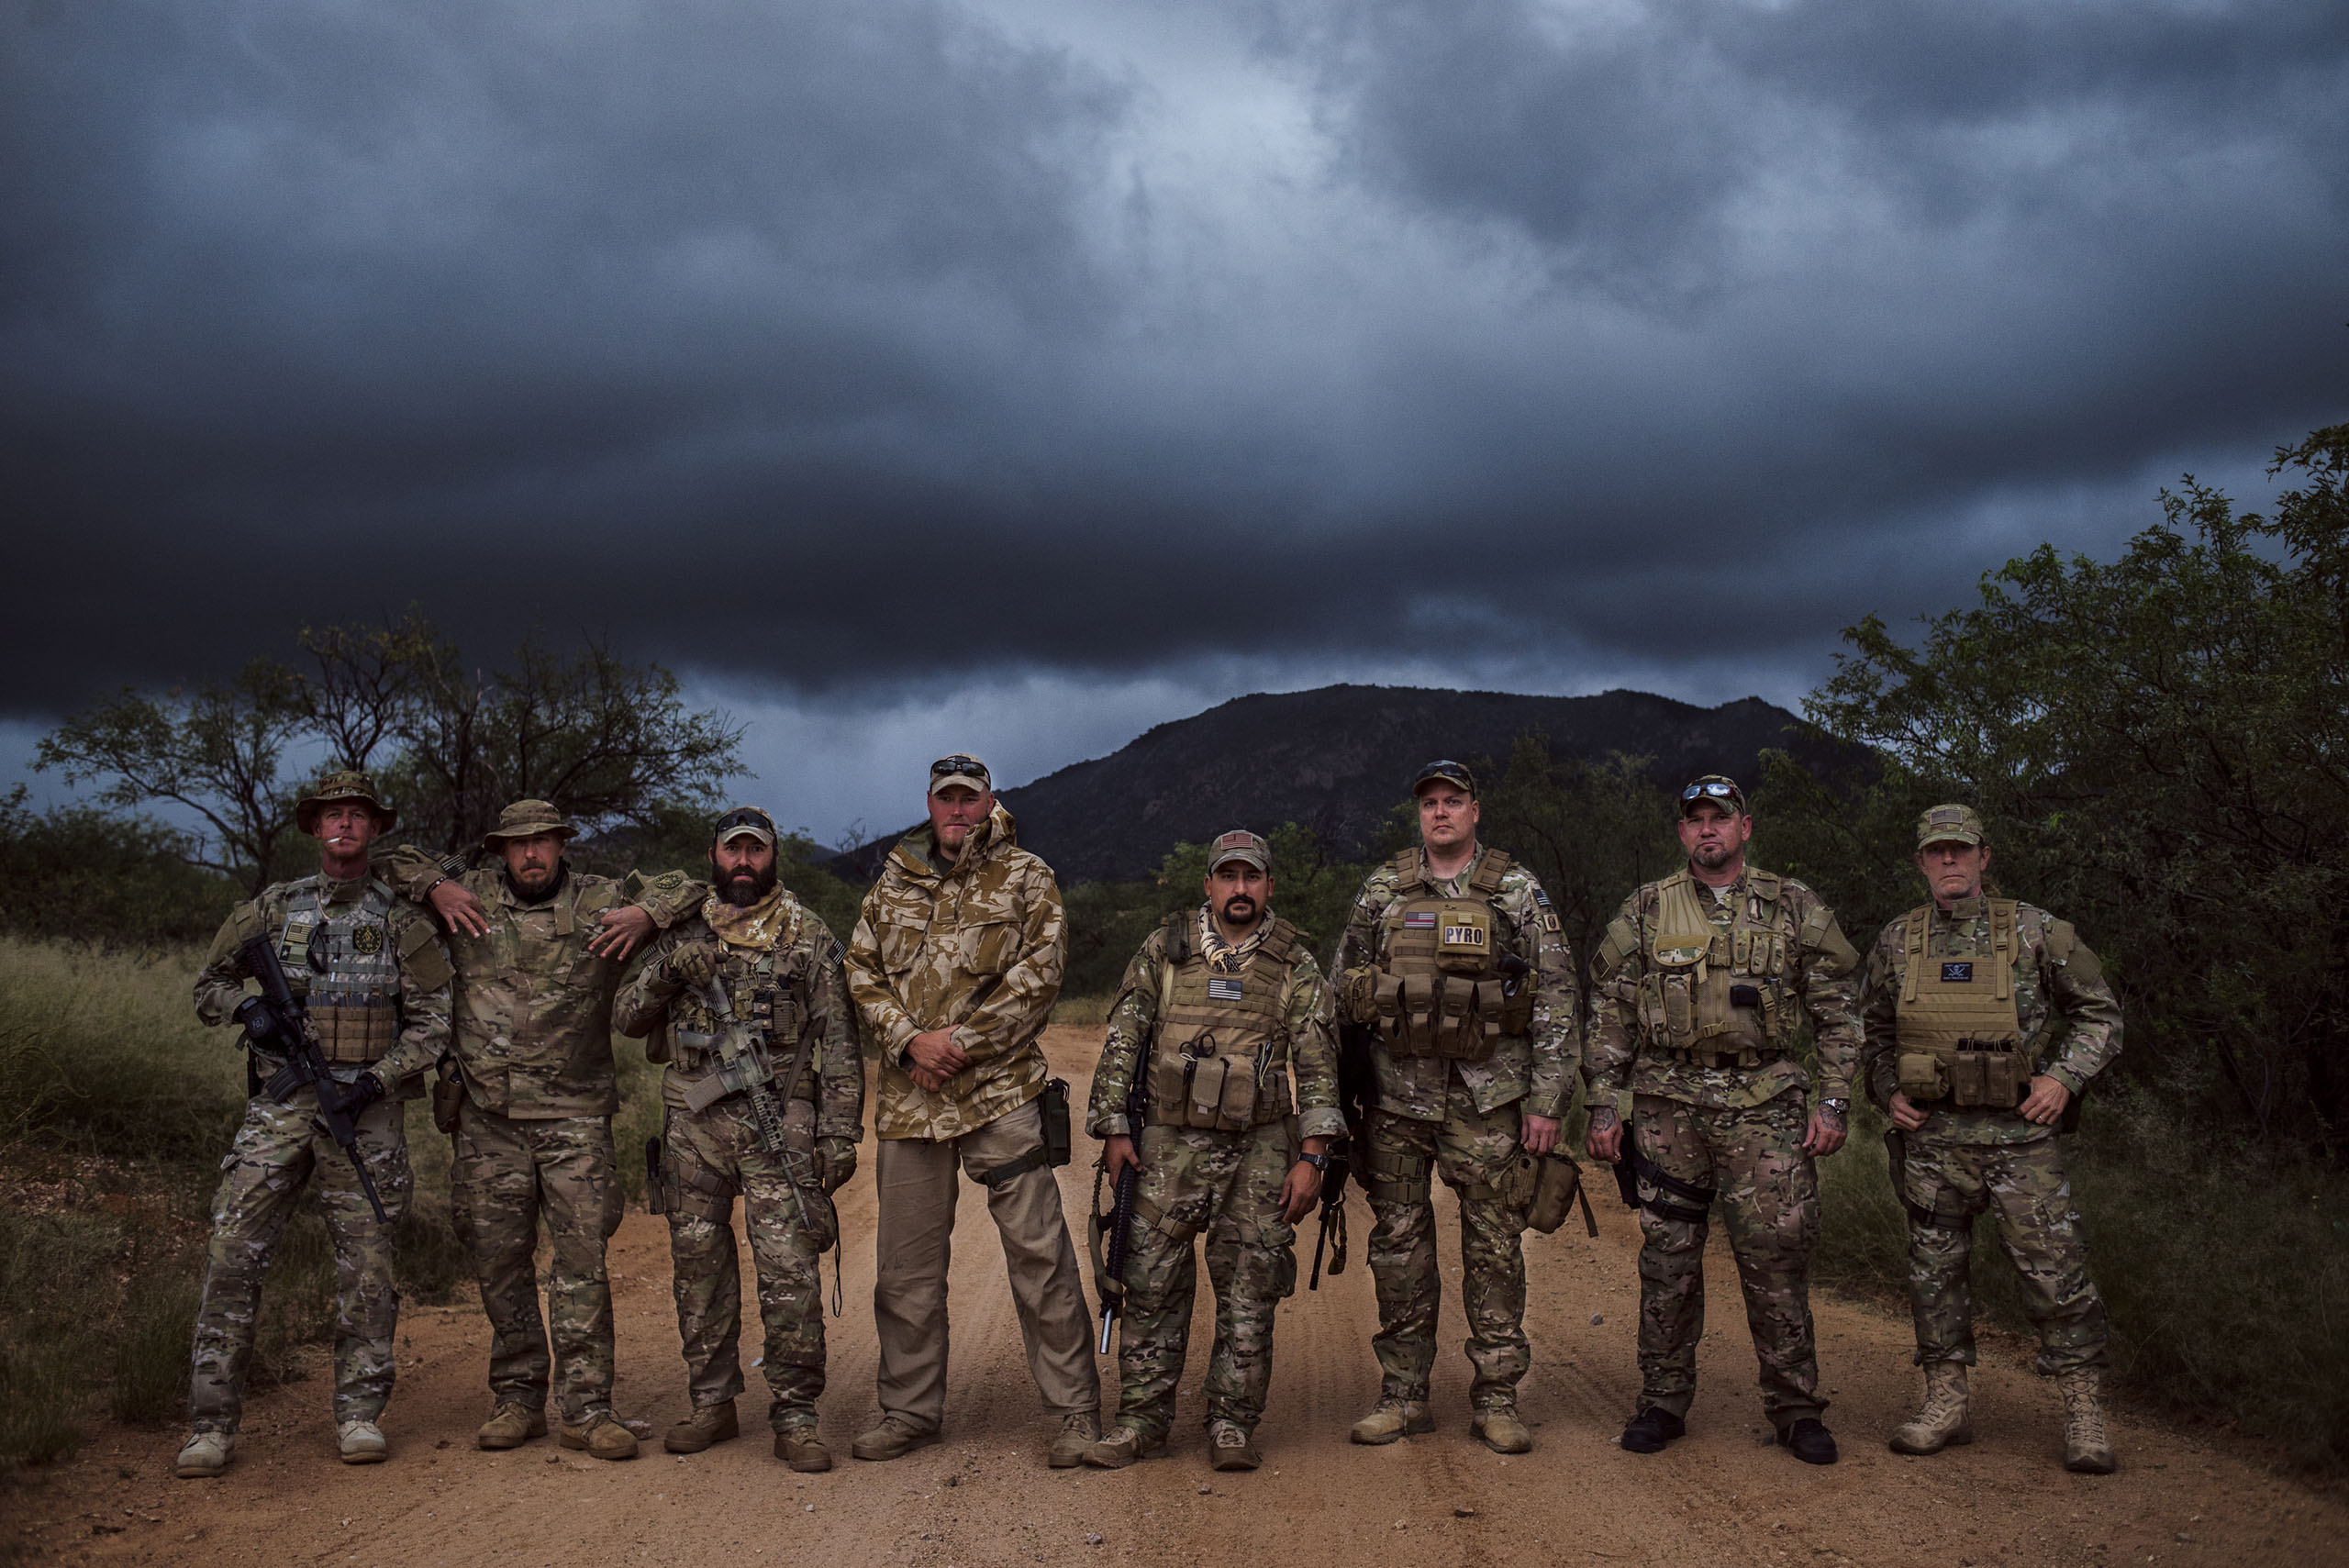 From an Al Jazeera America post: Desert Hawks — Paramilitary veterans group stakes out US-Mexico borderlandsMembers of the Arizona Border Recon pause for a group photo. For some, this was their first time out with the team.  Sasabe, Arizona. Oct. 7, 2014.